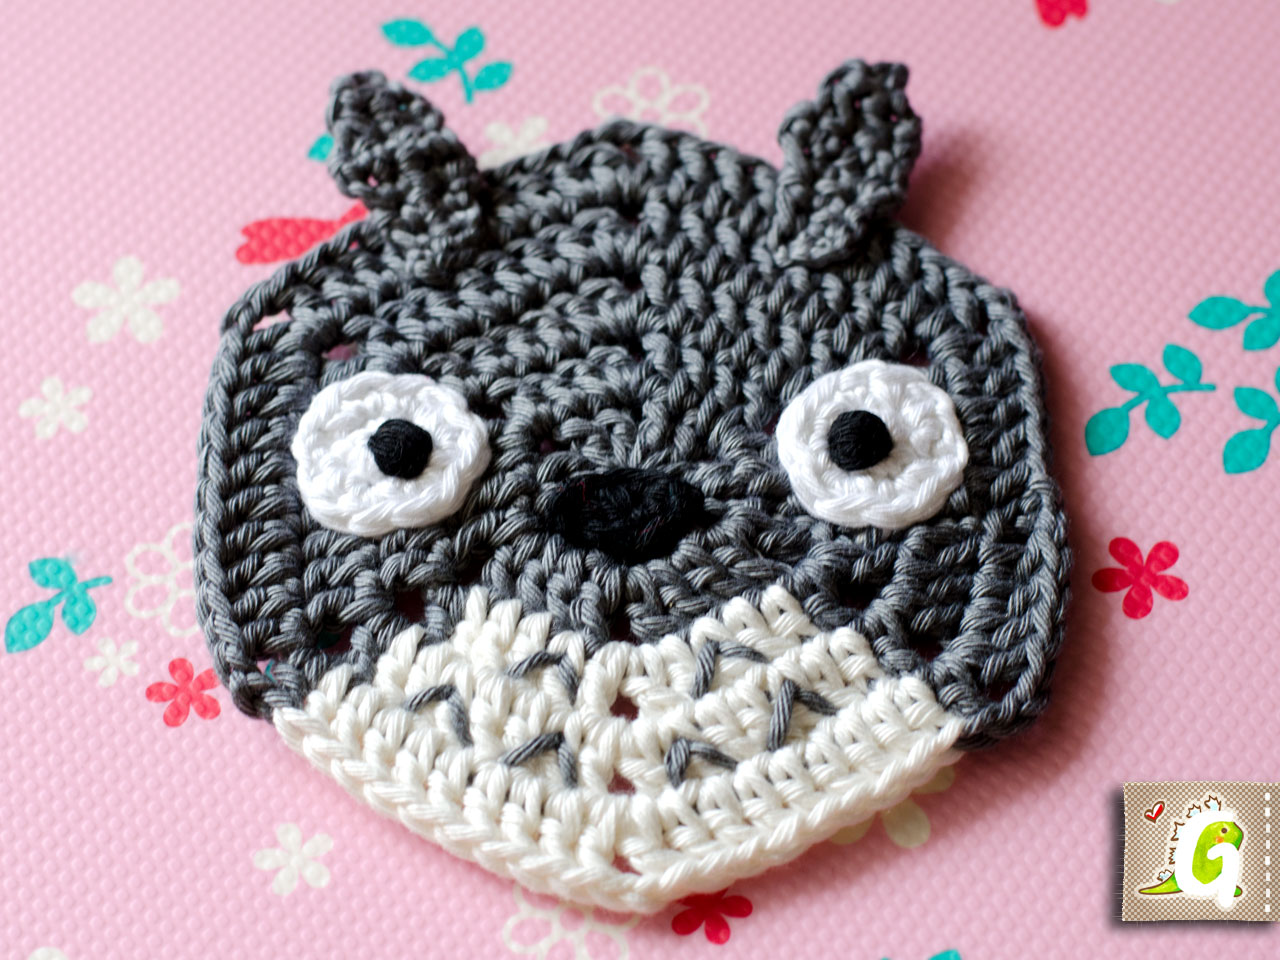 Groaaar totoro hexagon totoro is a trademark of kabushiki kaisha studio ghibli this pattern is for private use only you are not allowed to sell this pattern or items made by bankloansurffo Images